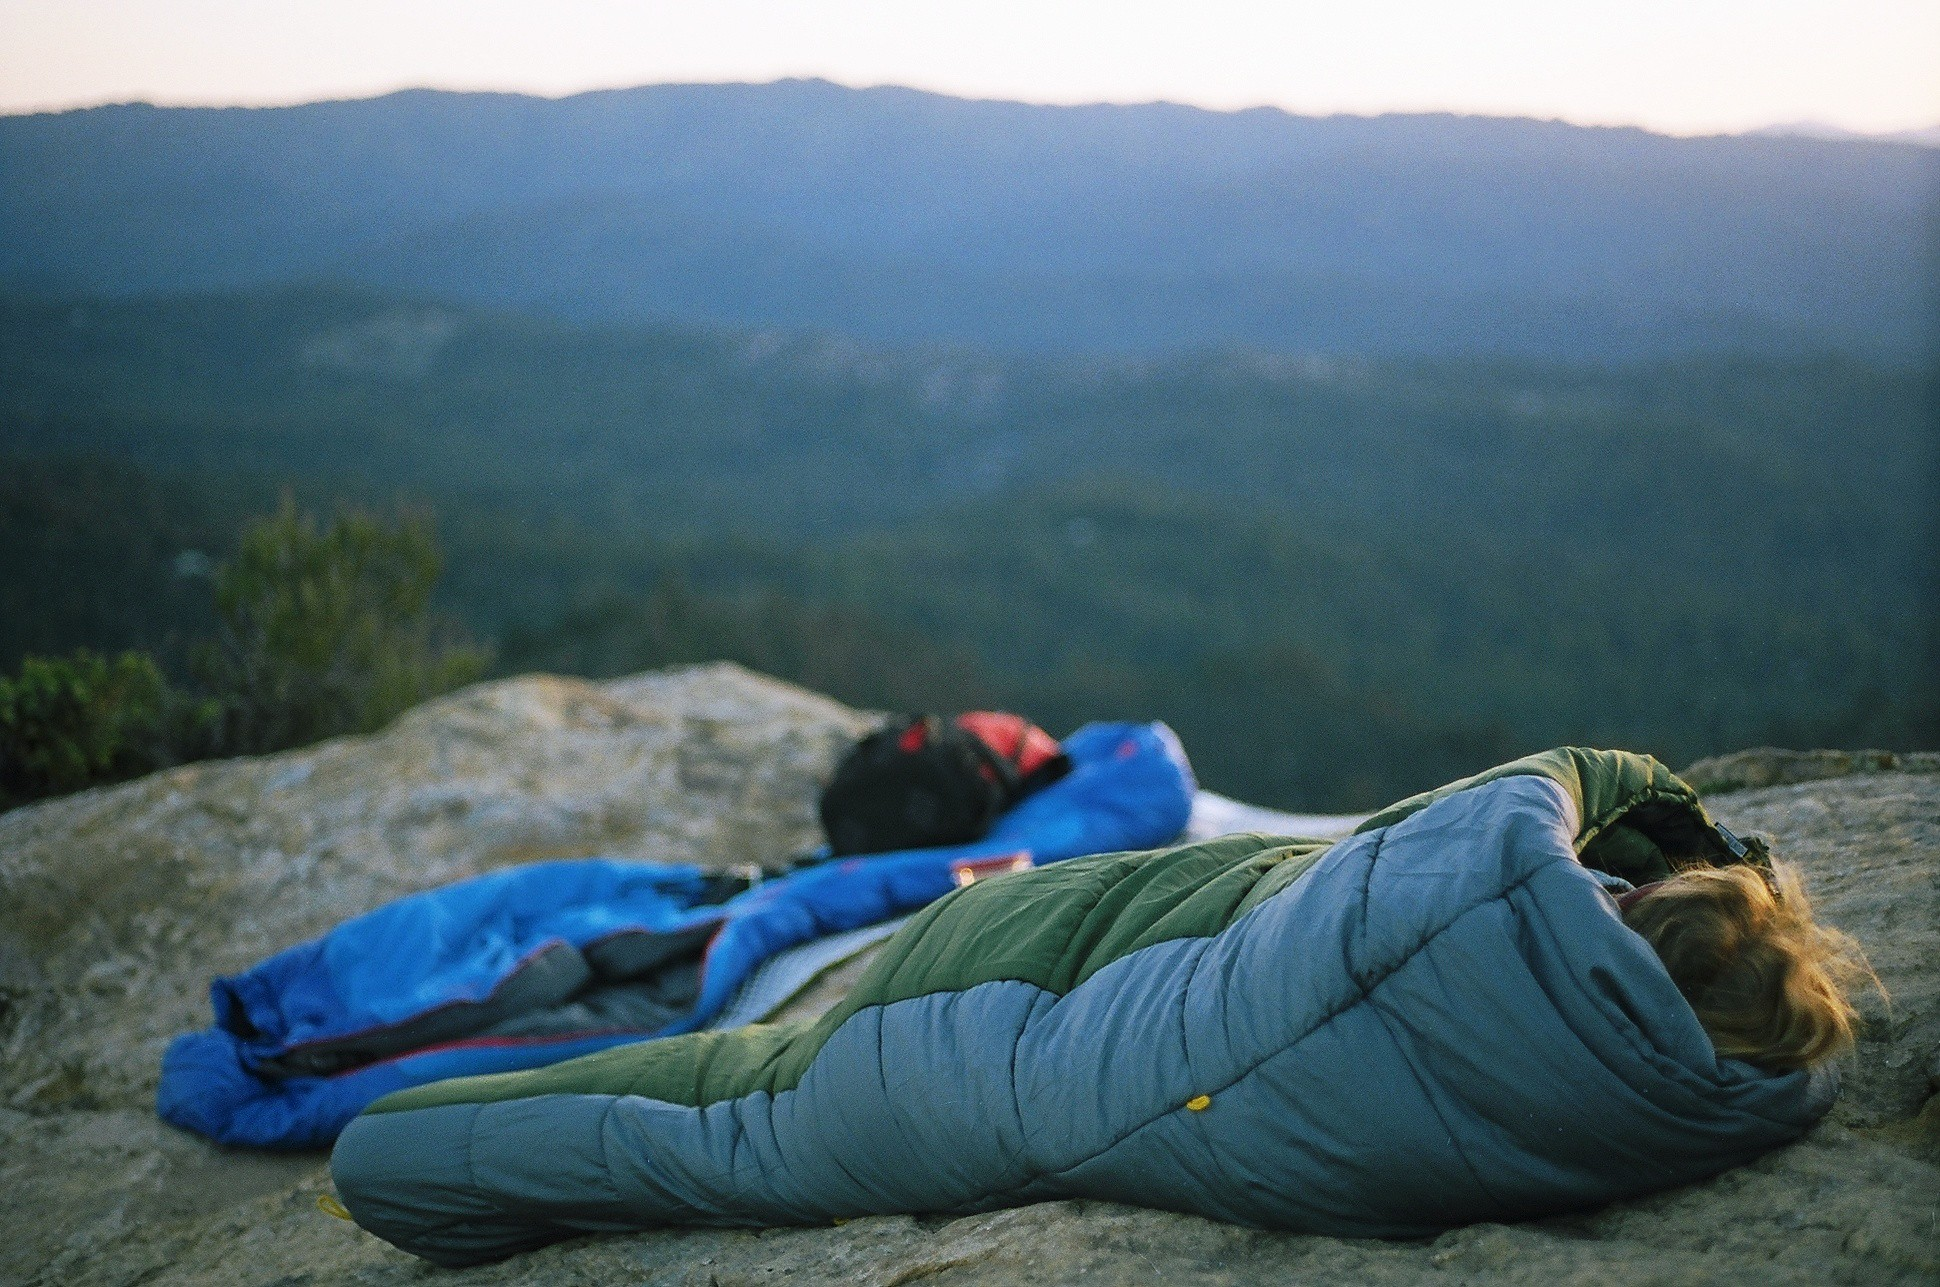 Best Backpacking Sleeping Bag Under 100 Dollars